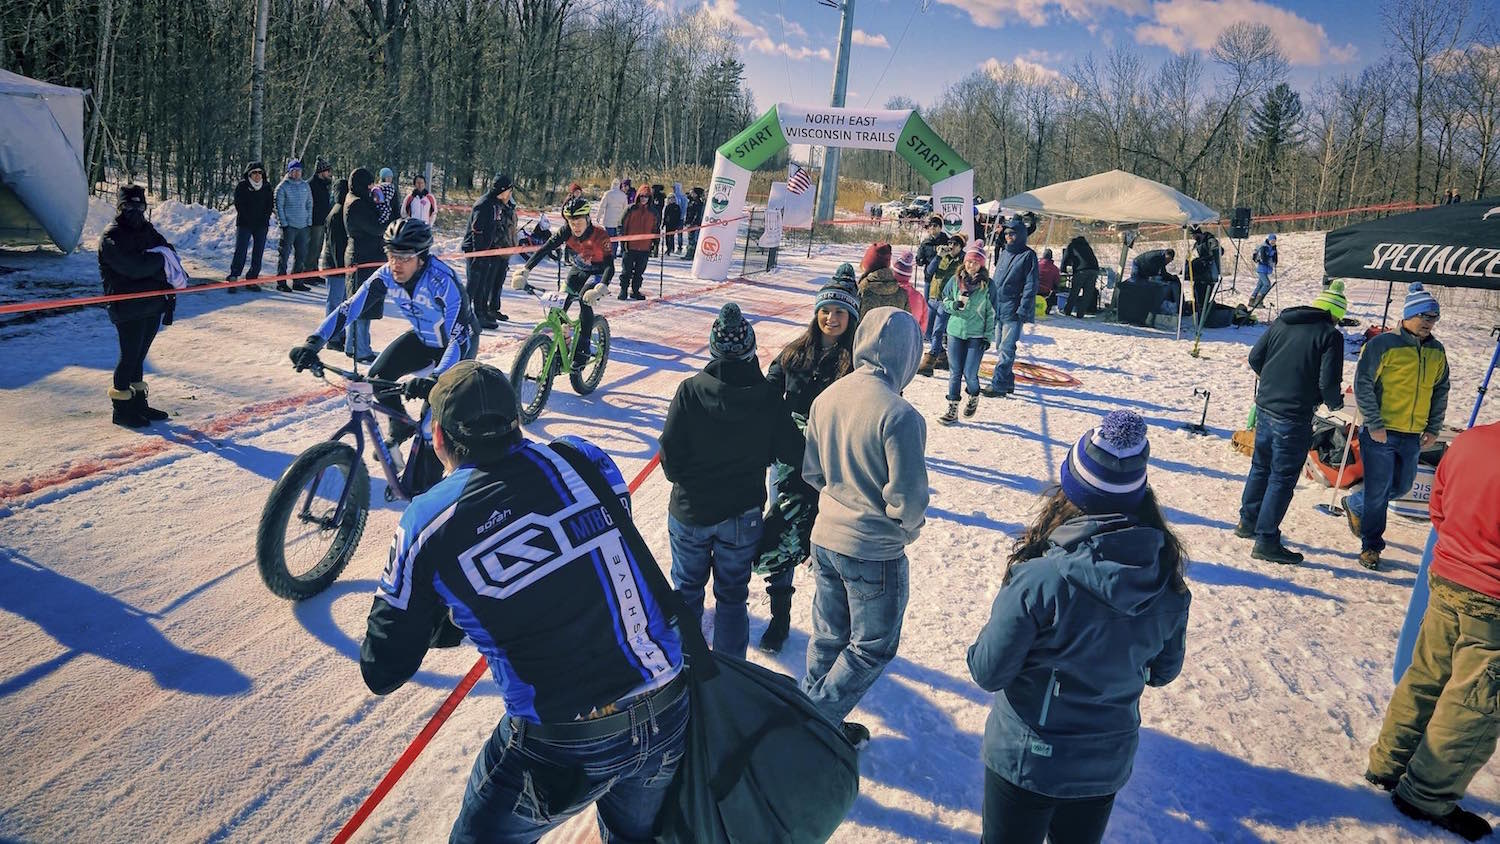 The crowd cheers on competitors at the start/finish line of the Fat Cupid Classic fat bike race.